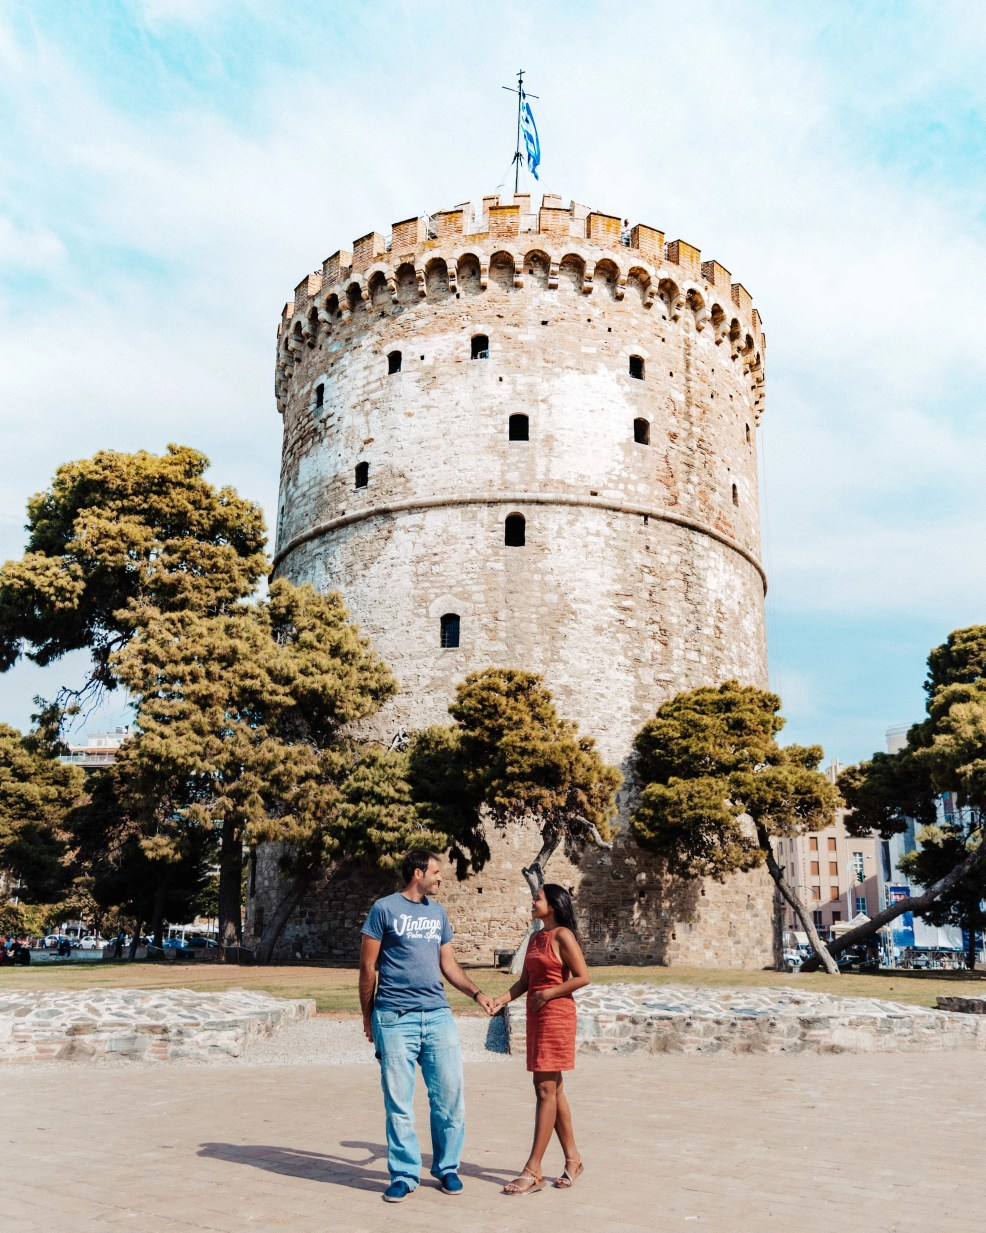 Thessaloniki travel guide, things to do in Thessaloniki, food to try in Thessaloniki, best time to visit thessaloniki, how to get to thessaloniki from the airport, how to get to thessaloniki, white tower